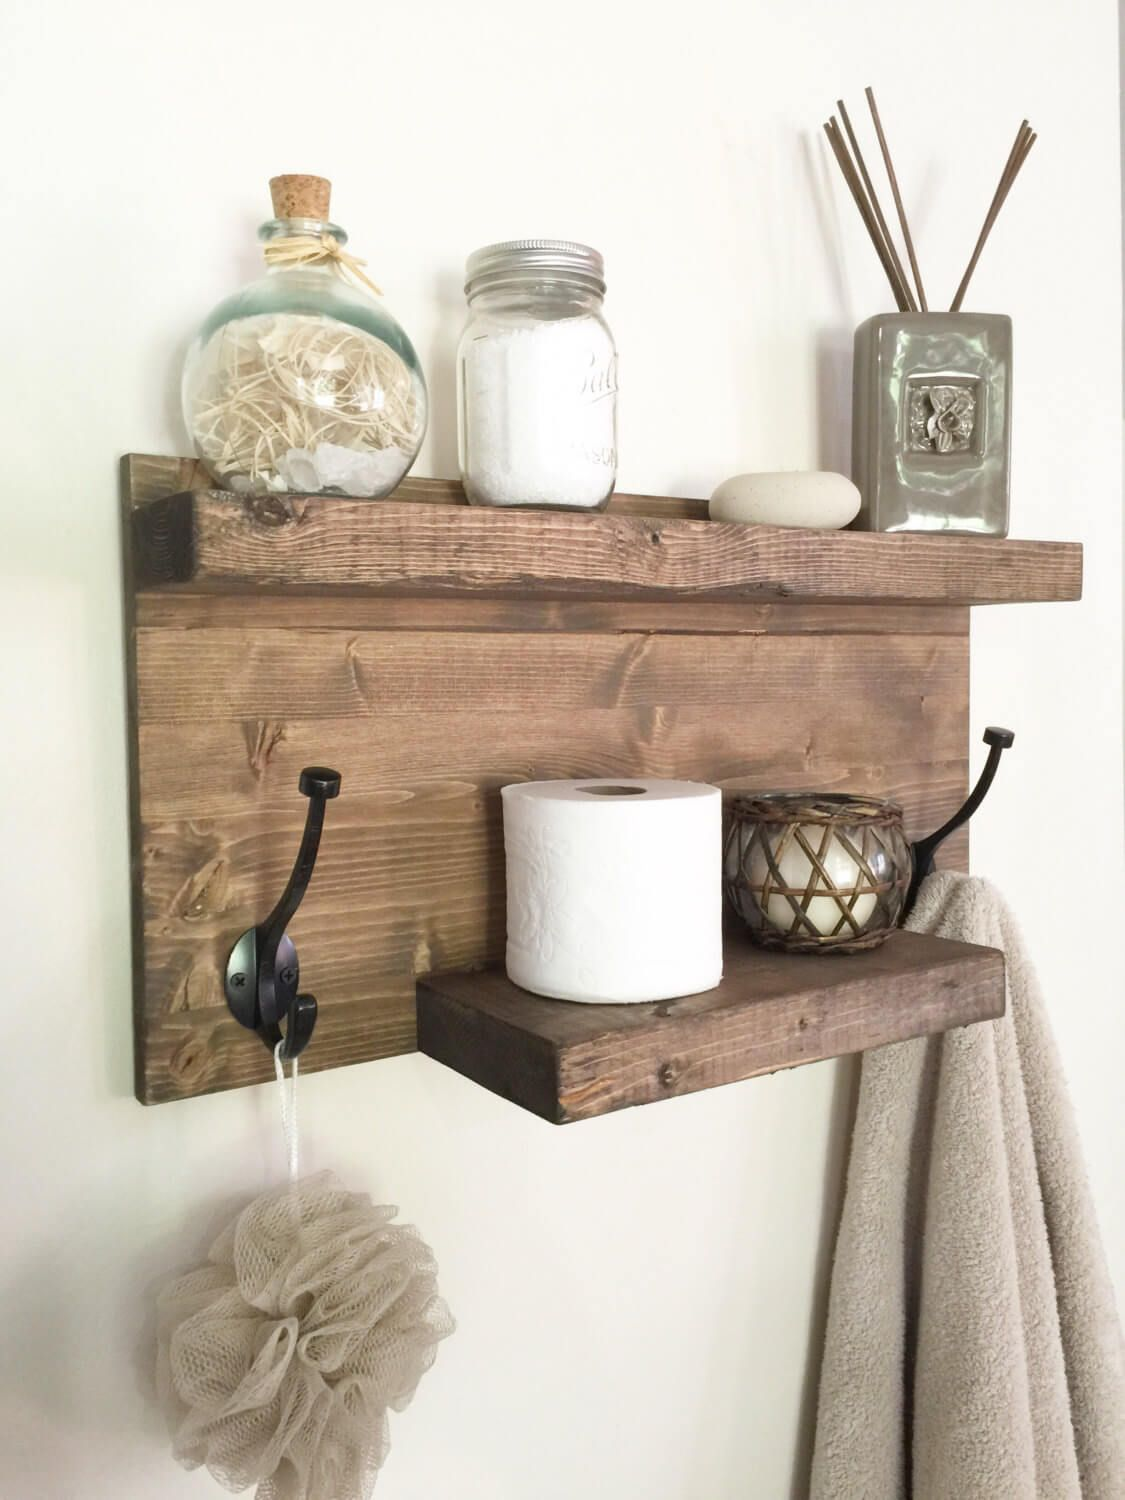 Diy Wood Towel Rack And Organizer Rustic Bathroom Shelves Bathroom Design Decor Rustic Towels